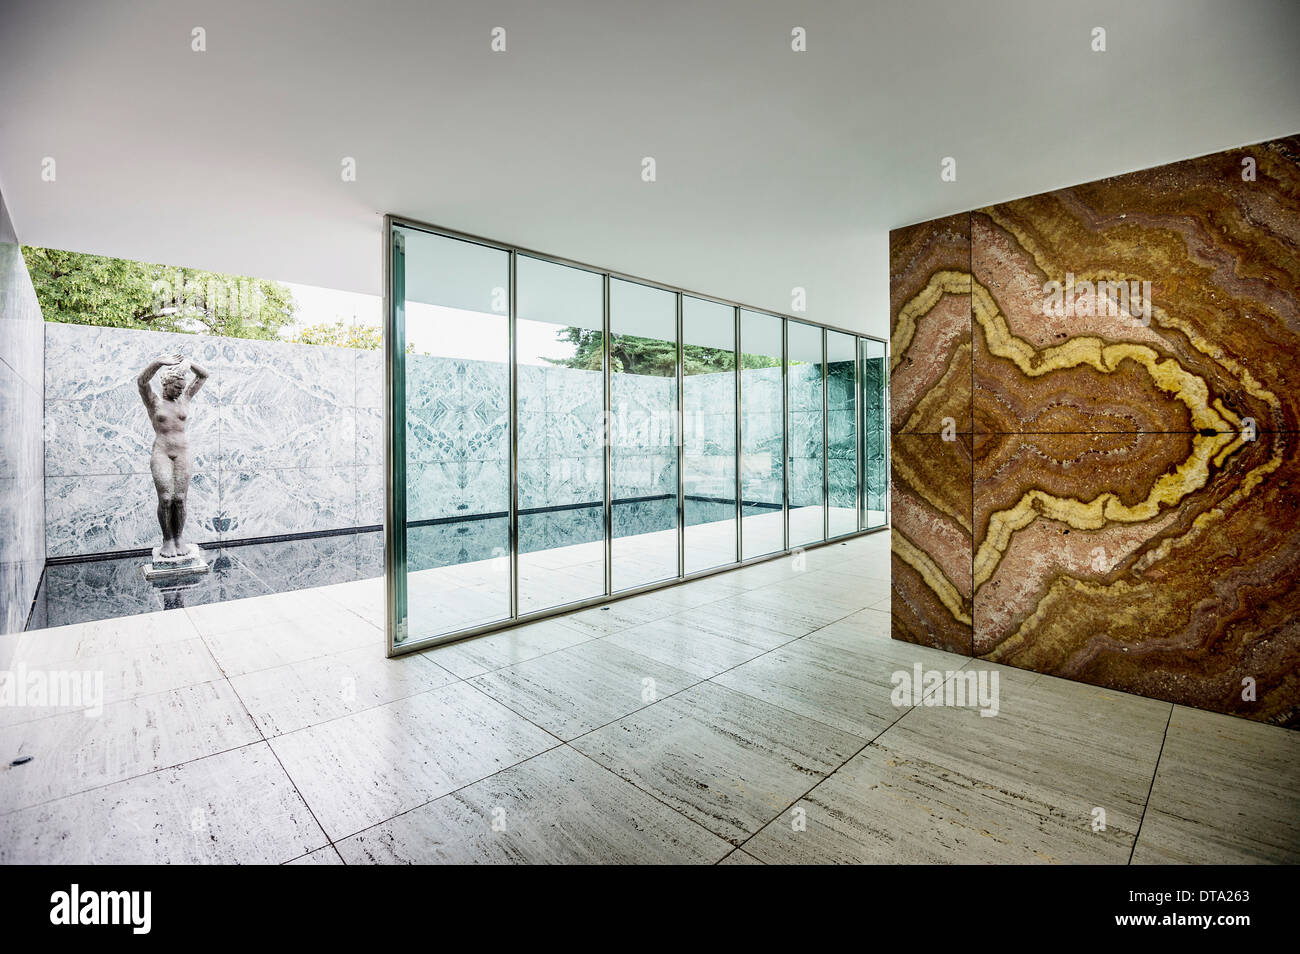 barcelona pavilion architect ludwig mies van der rohe for the 1929 stock photo 66604107 alamy. Black Bedroom Furniture Sets. Home Design Ideas